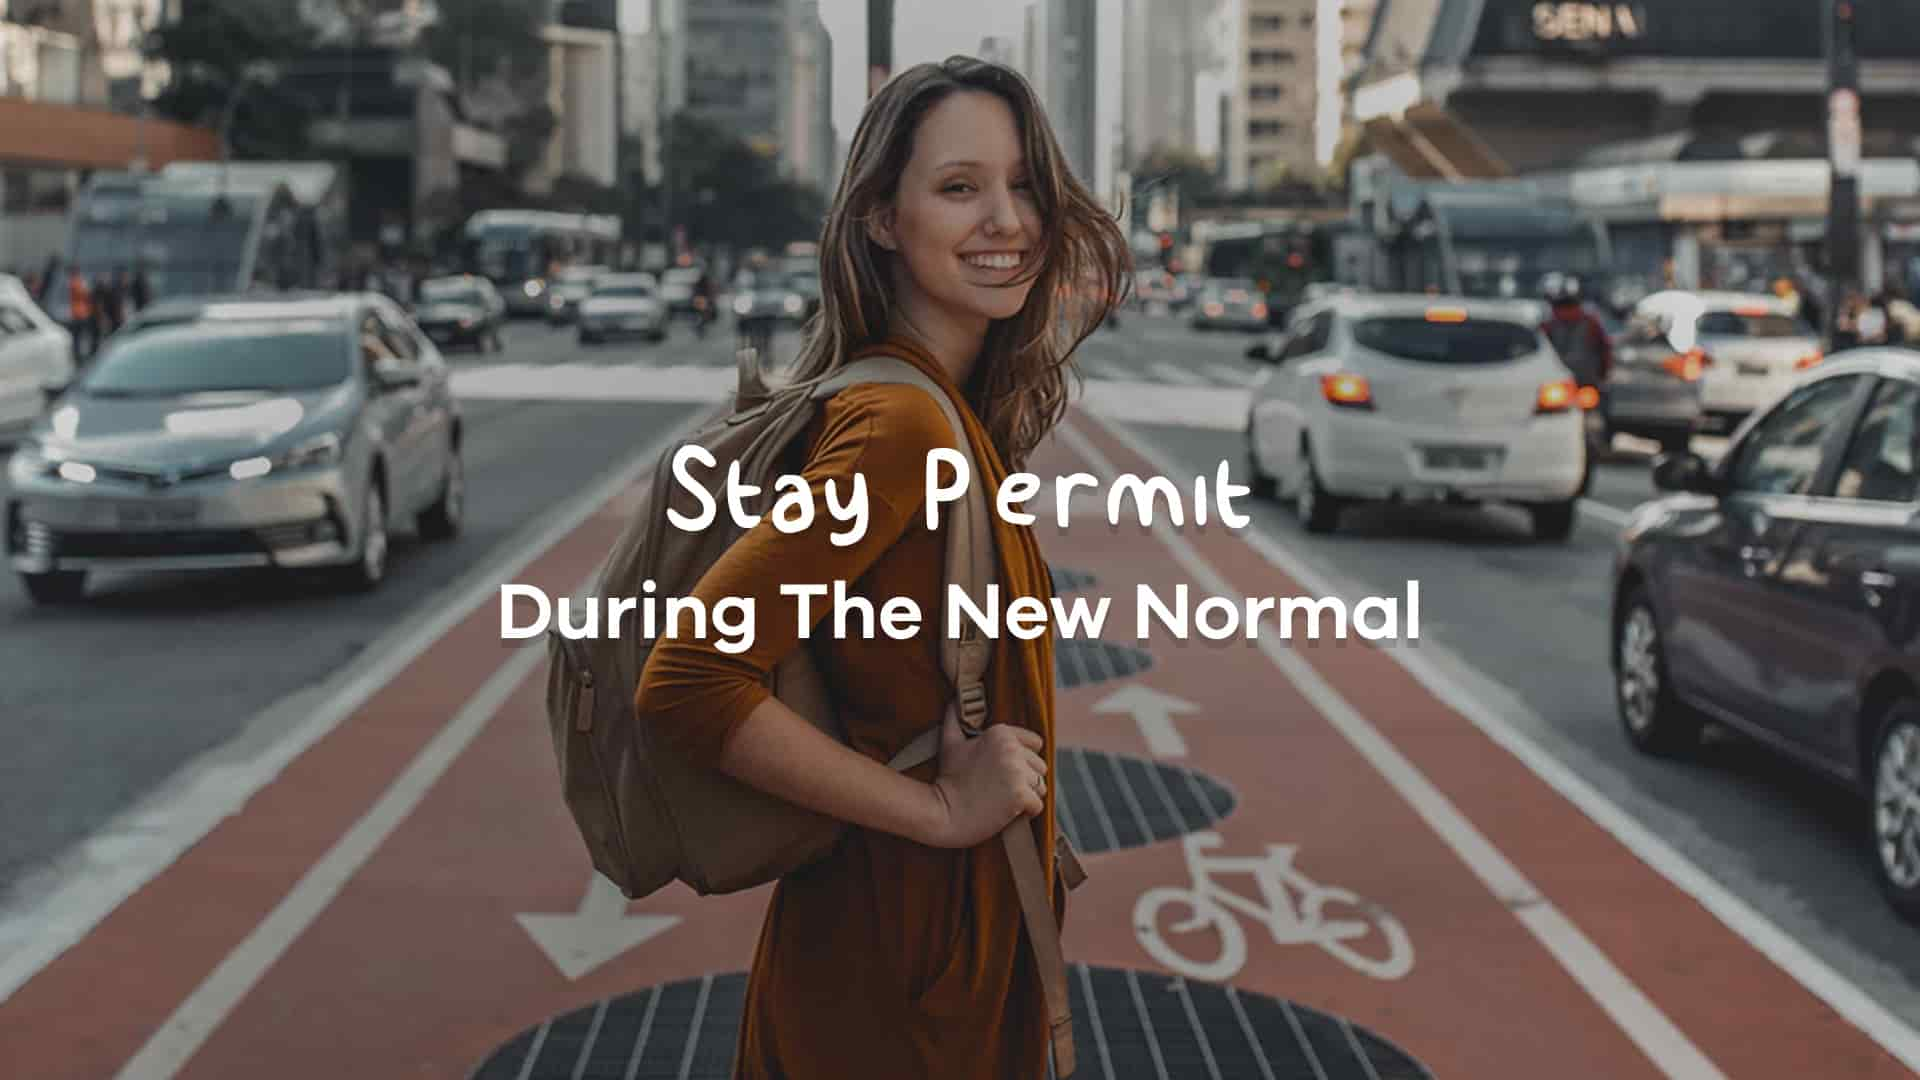 Stay Permit During The New Normal